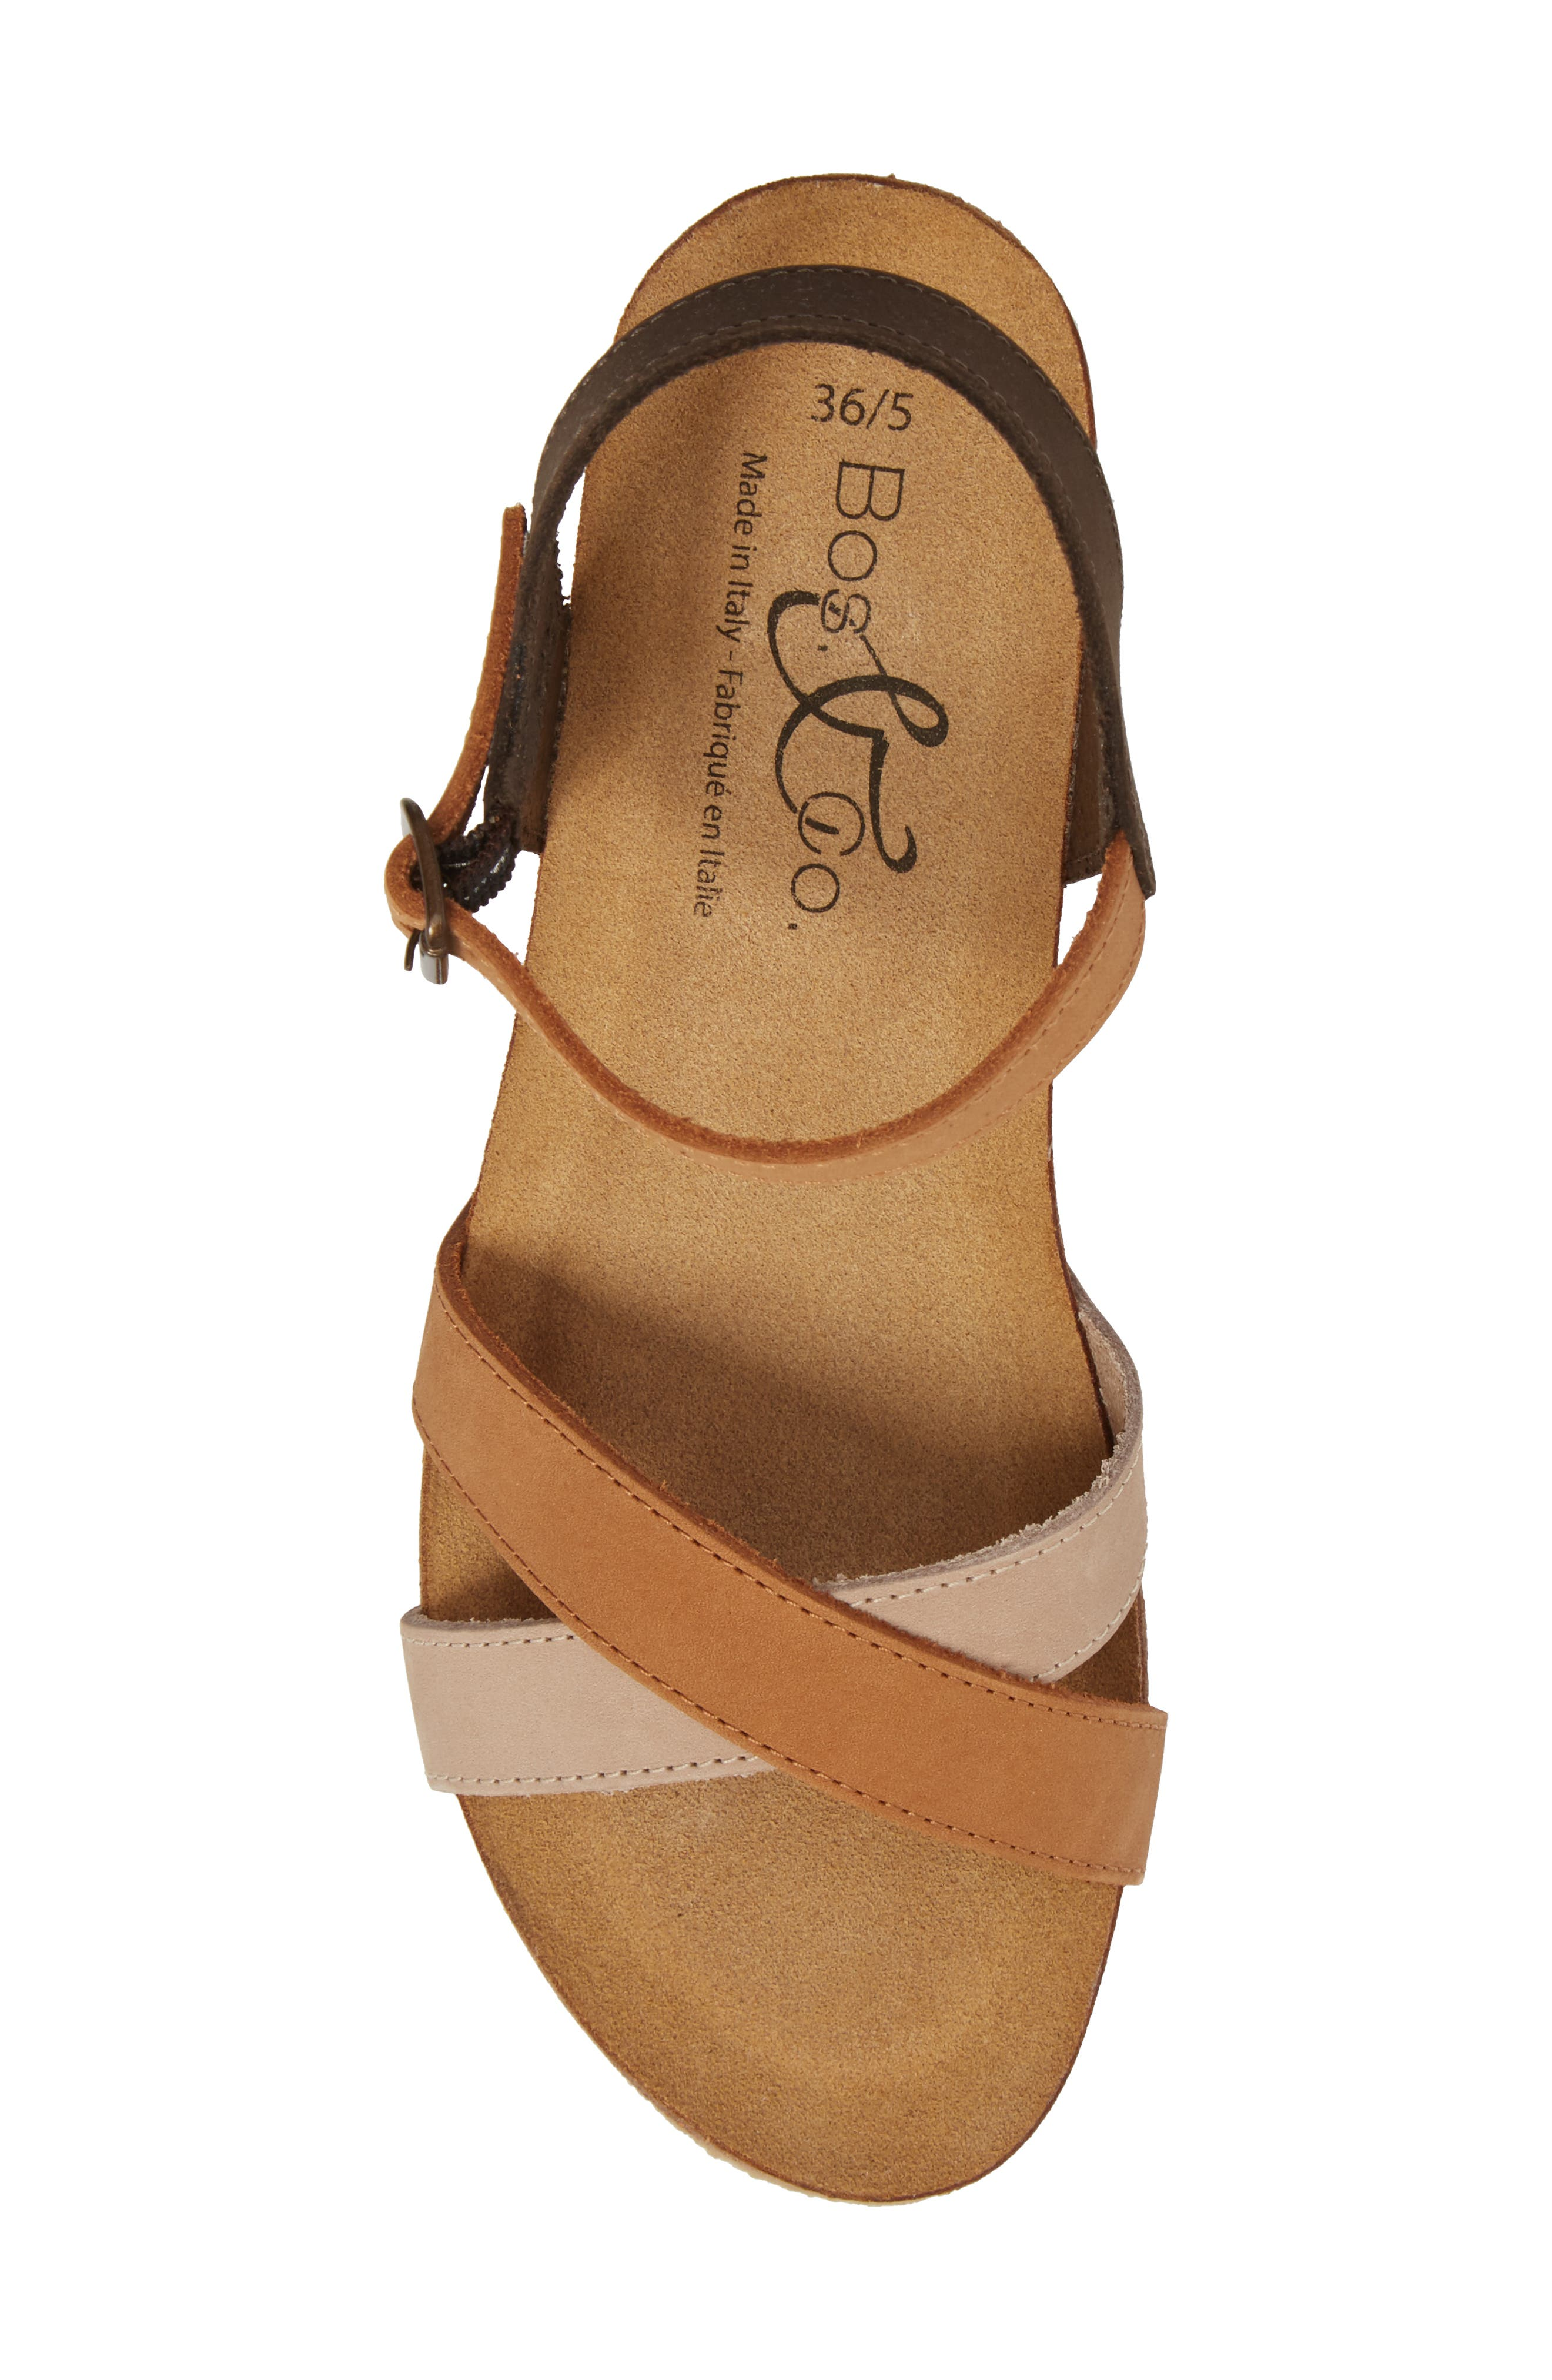 Lucca Wedge Sandal,                             Alternate thumbnail 5, color,                             Multi Cognac Nubuck Leather